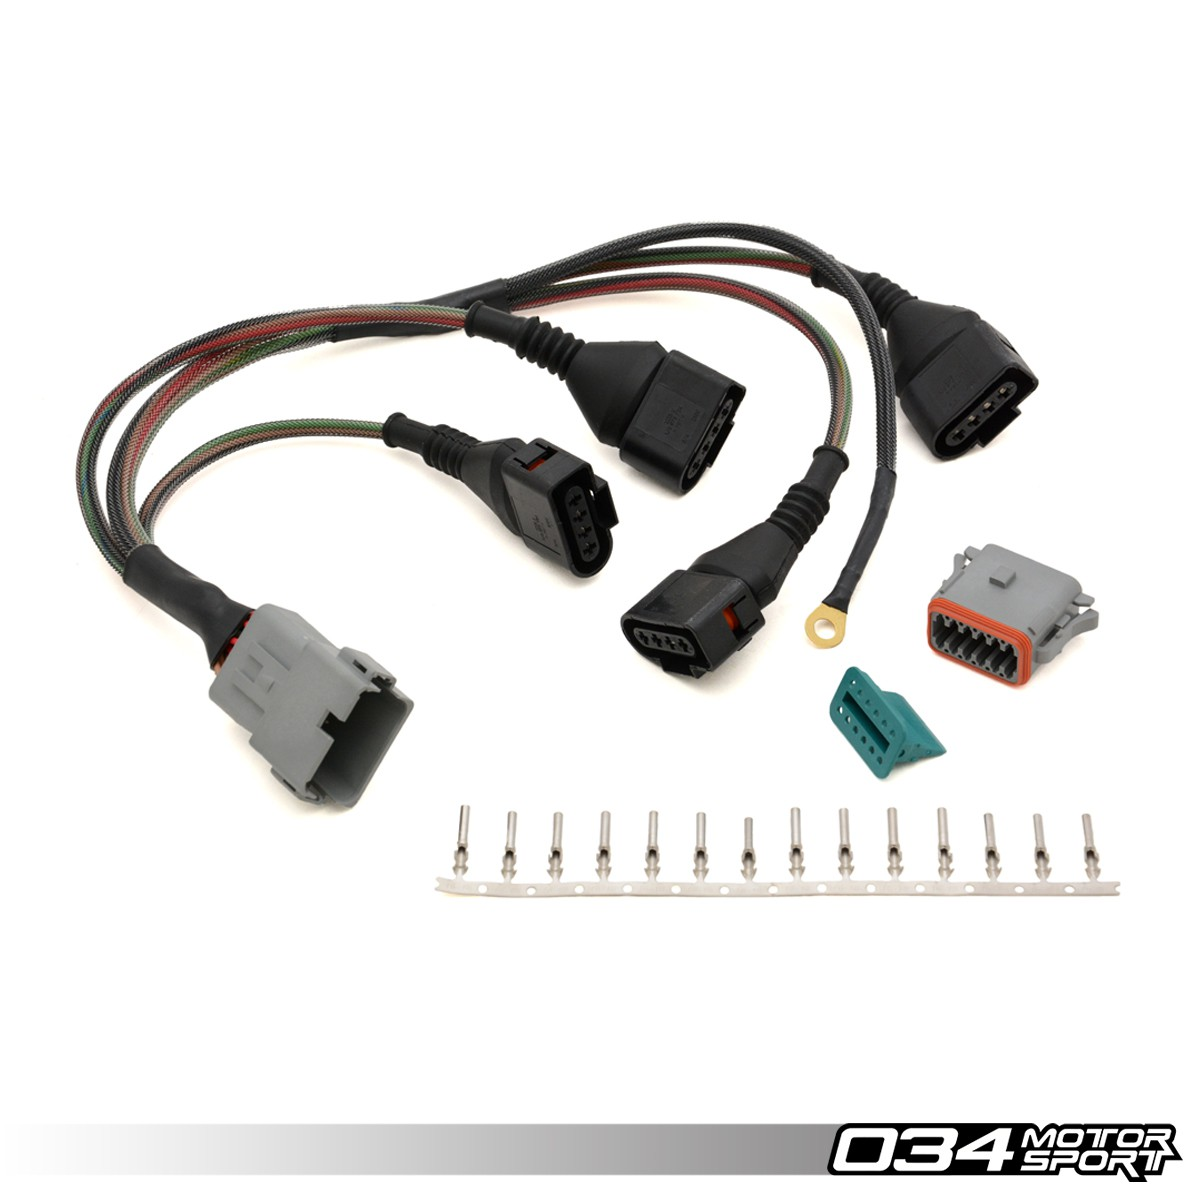 repair update harness audi volkswagen 18t with 4 wire coils 034motorsport 034 701 0004 2 repair update harness, audi volkswagen 1 8t with 4 wire coils electrical wiring harness connectors at gsmportal.co